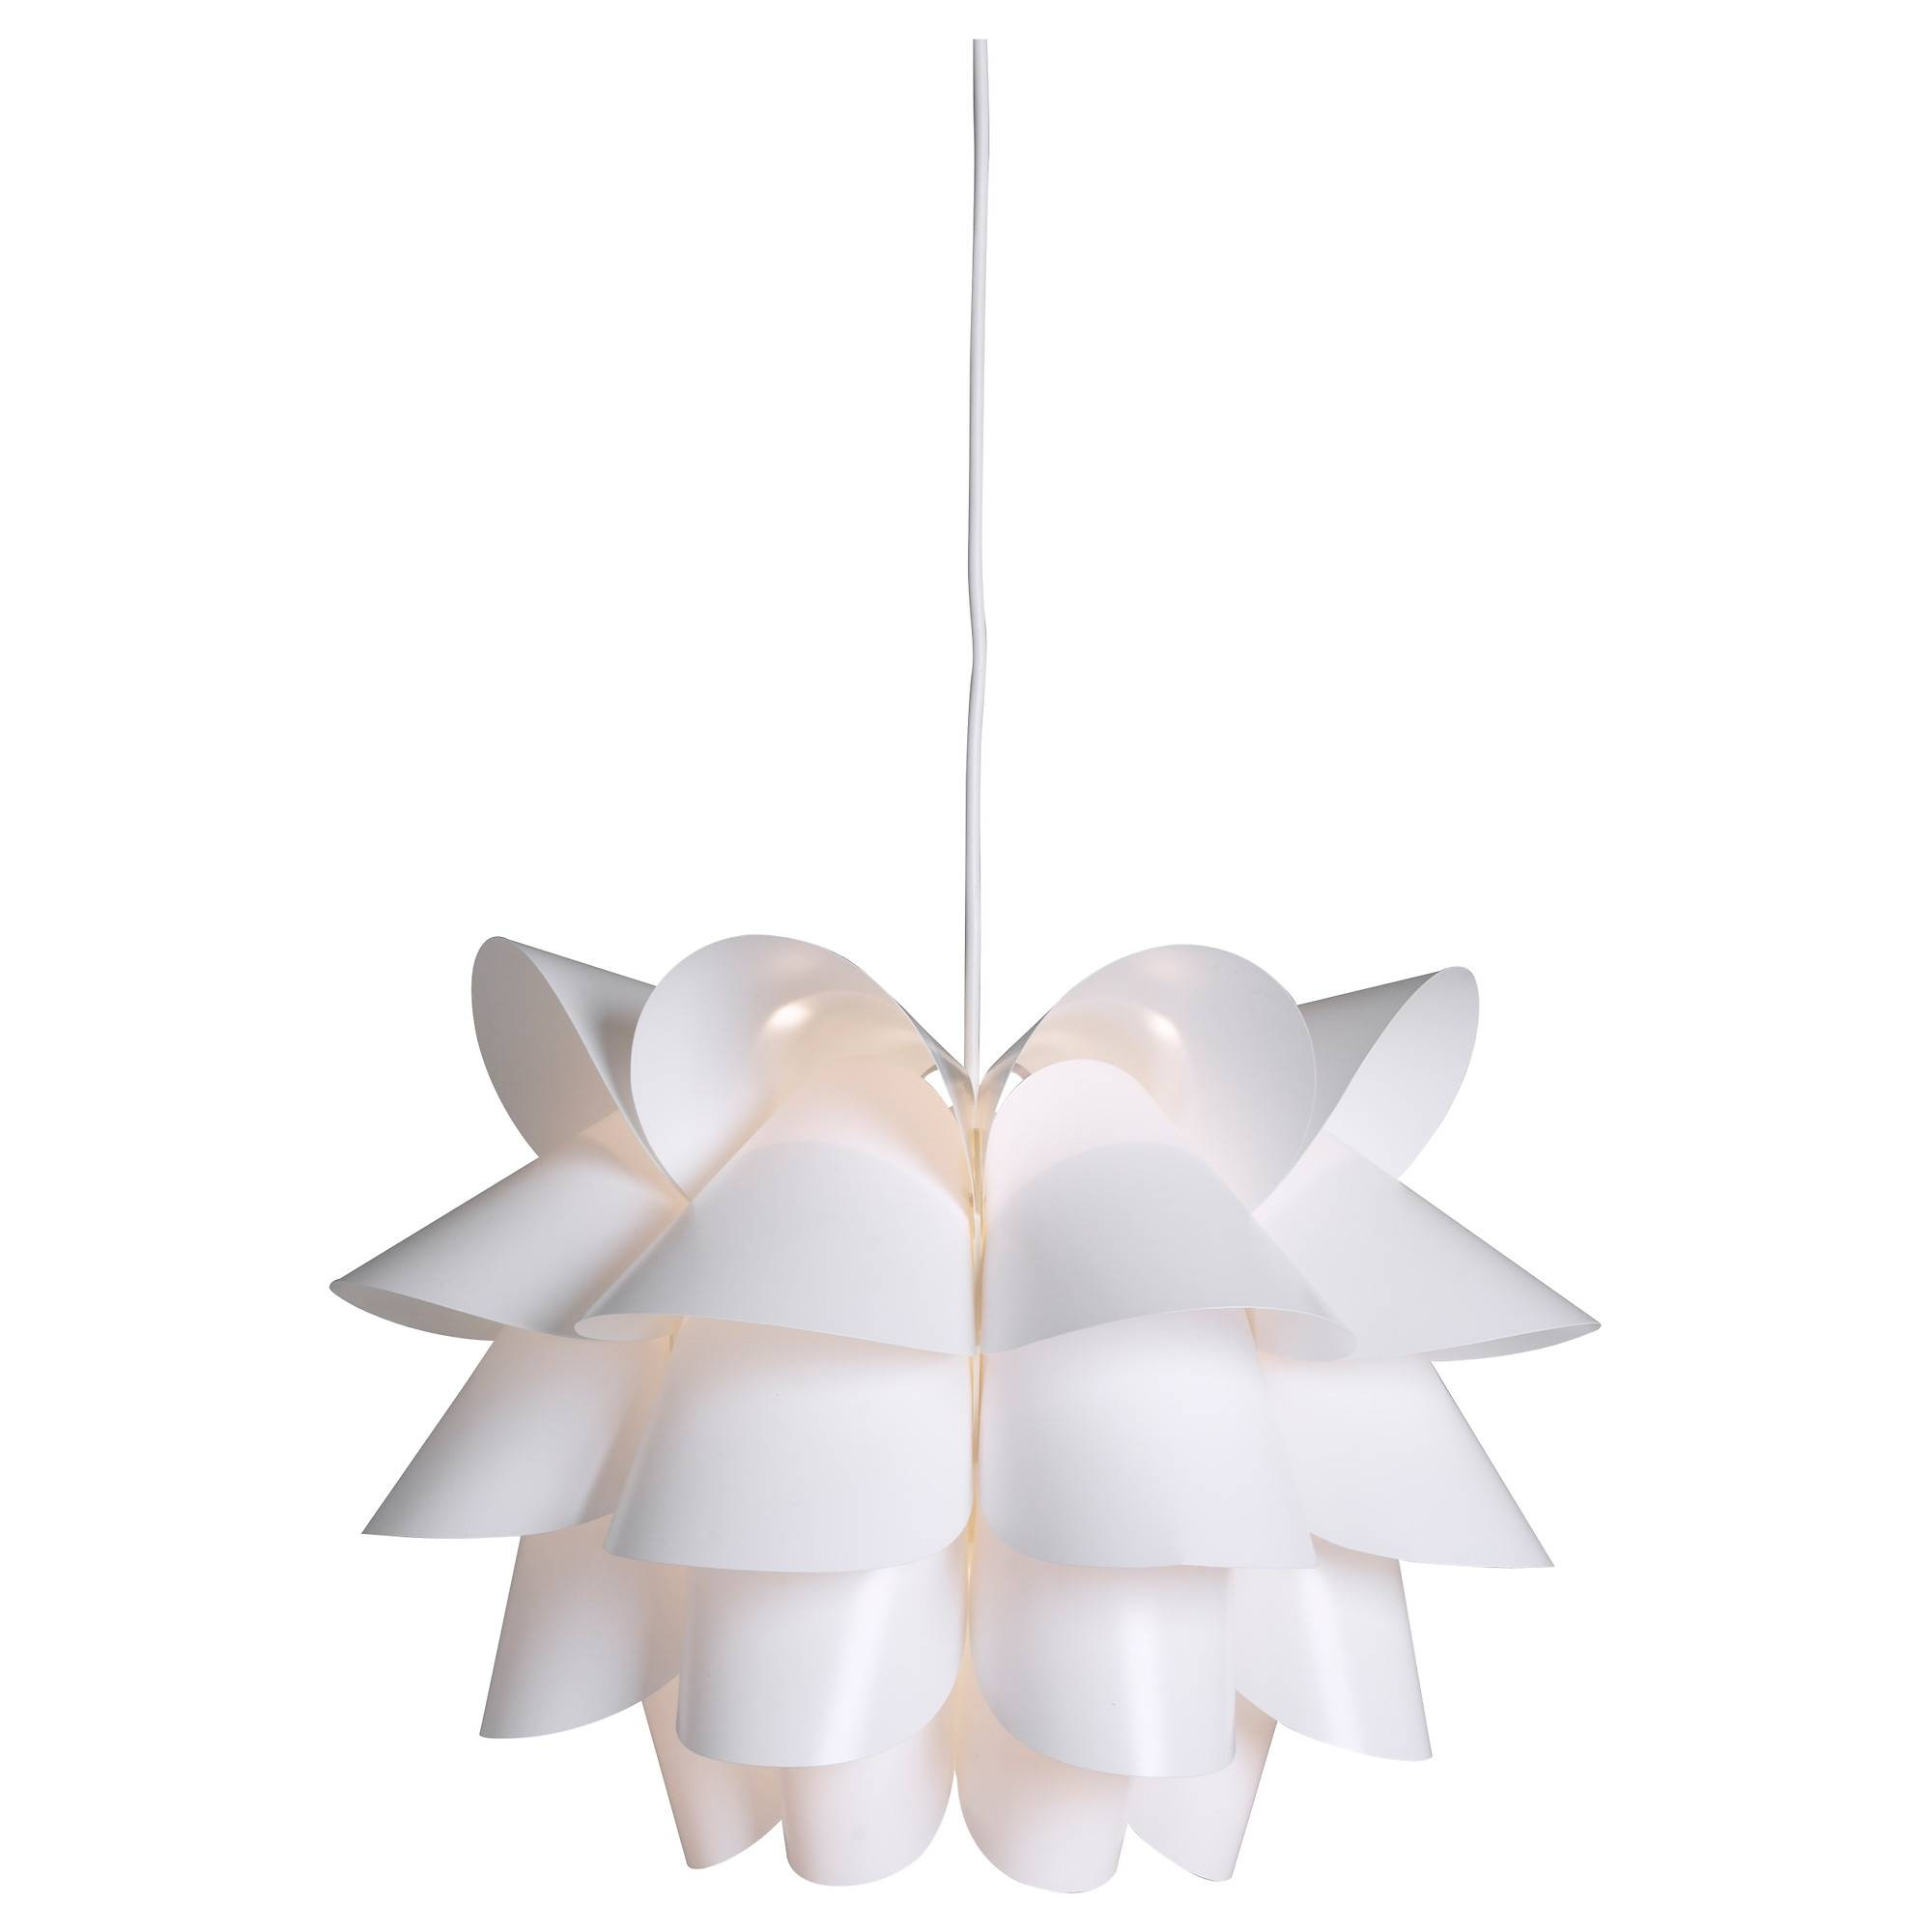 Knappa Pendant Lamp - Ikea intended for Ikea Pendants (Image 6 of 15)